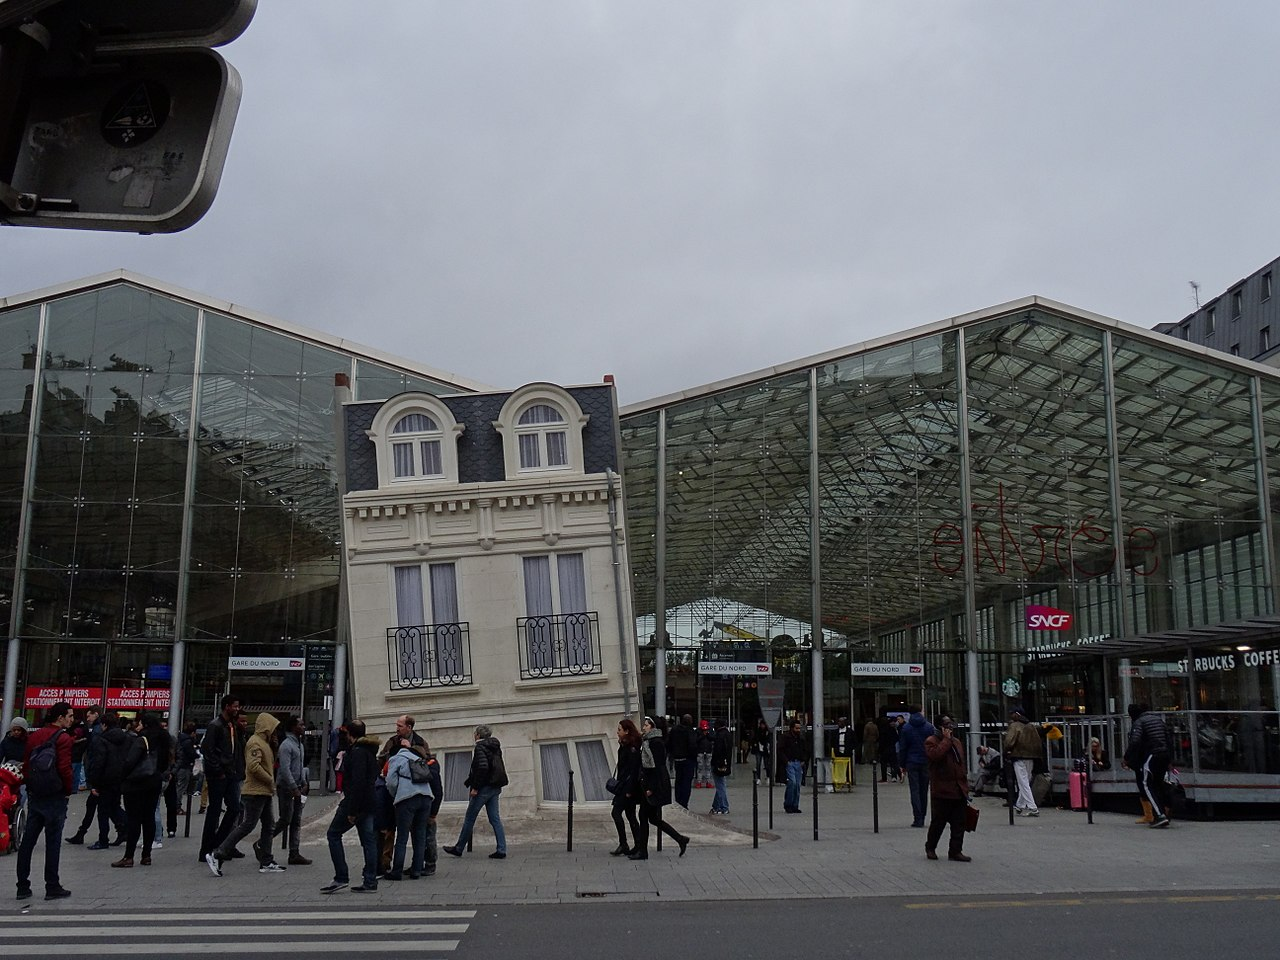 fichier immeuble parisien gare du nord paris 21993202064 jpg wikip dia. Black Bedroom Furniture Sets. Home Design Ideas